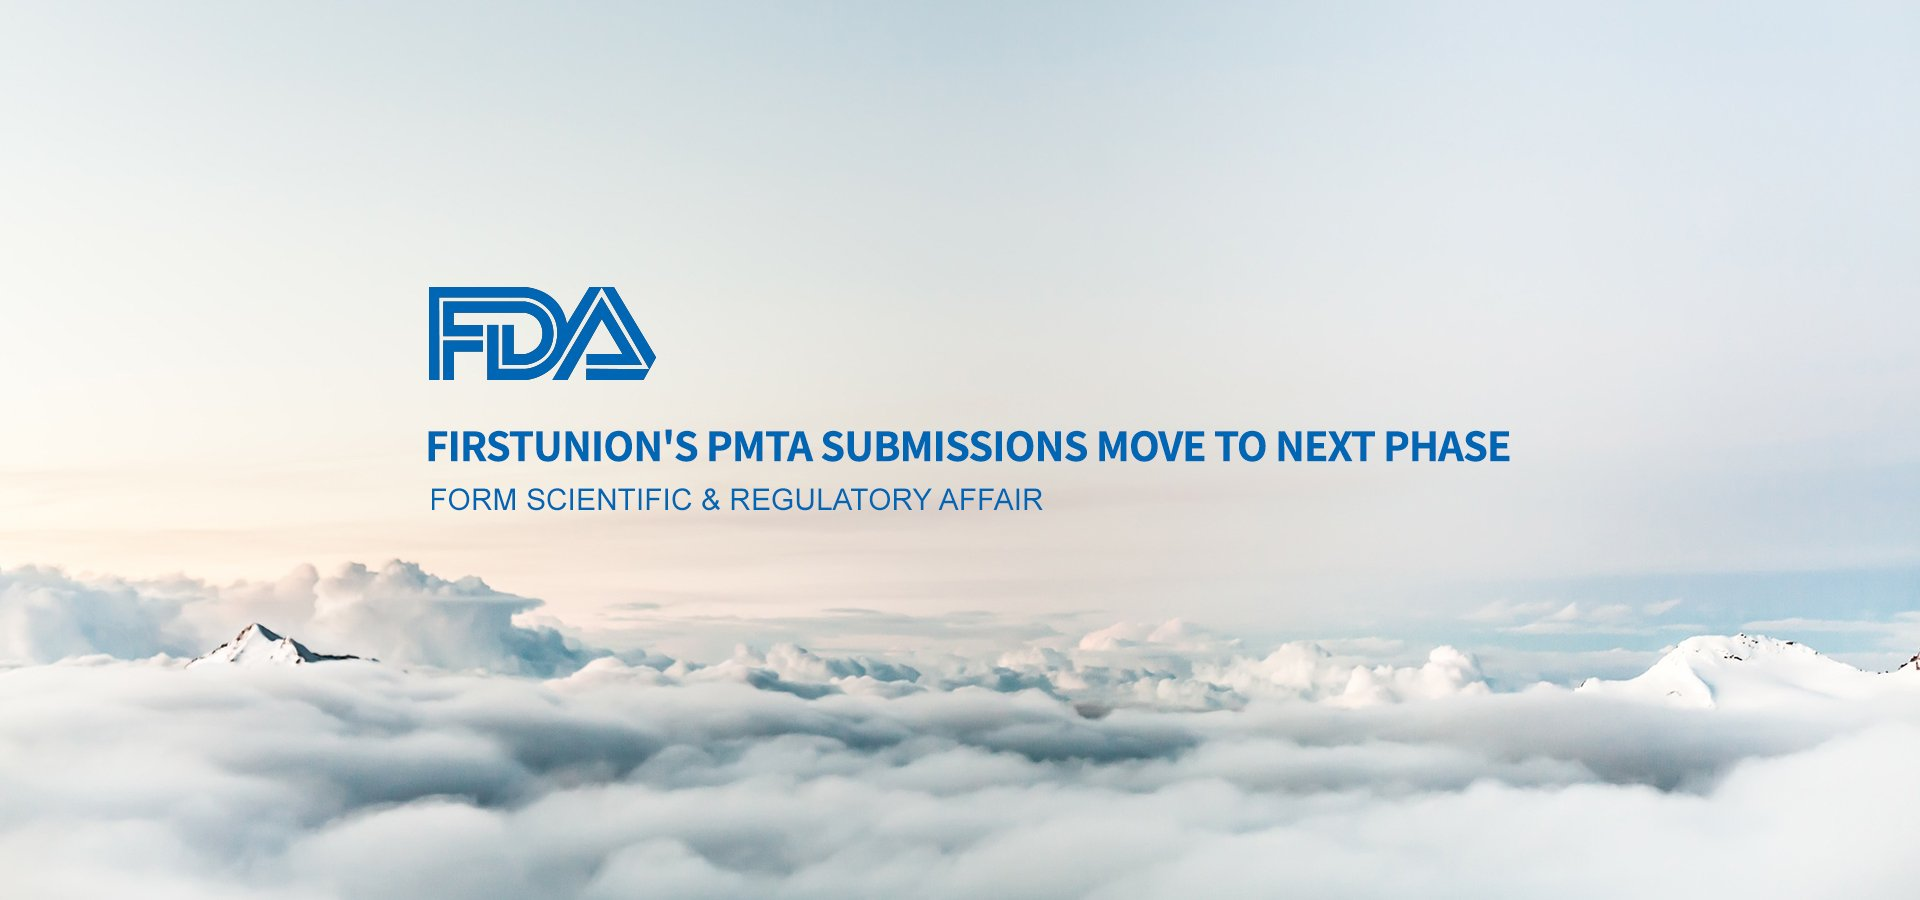 PMTA,fda,firstunion